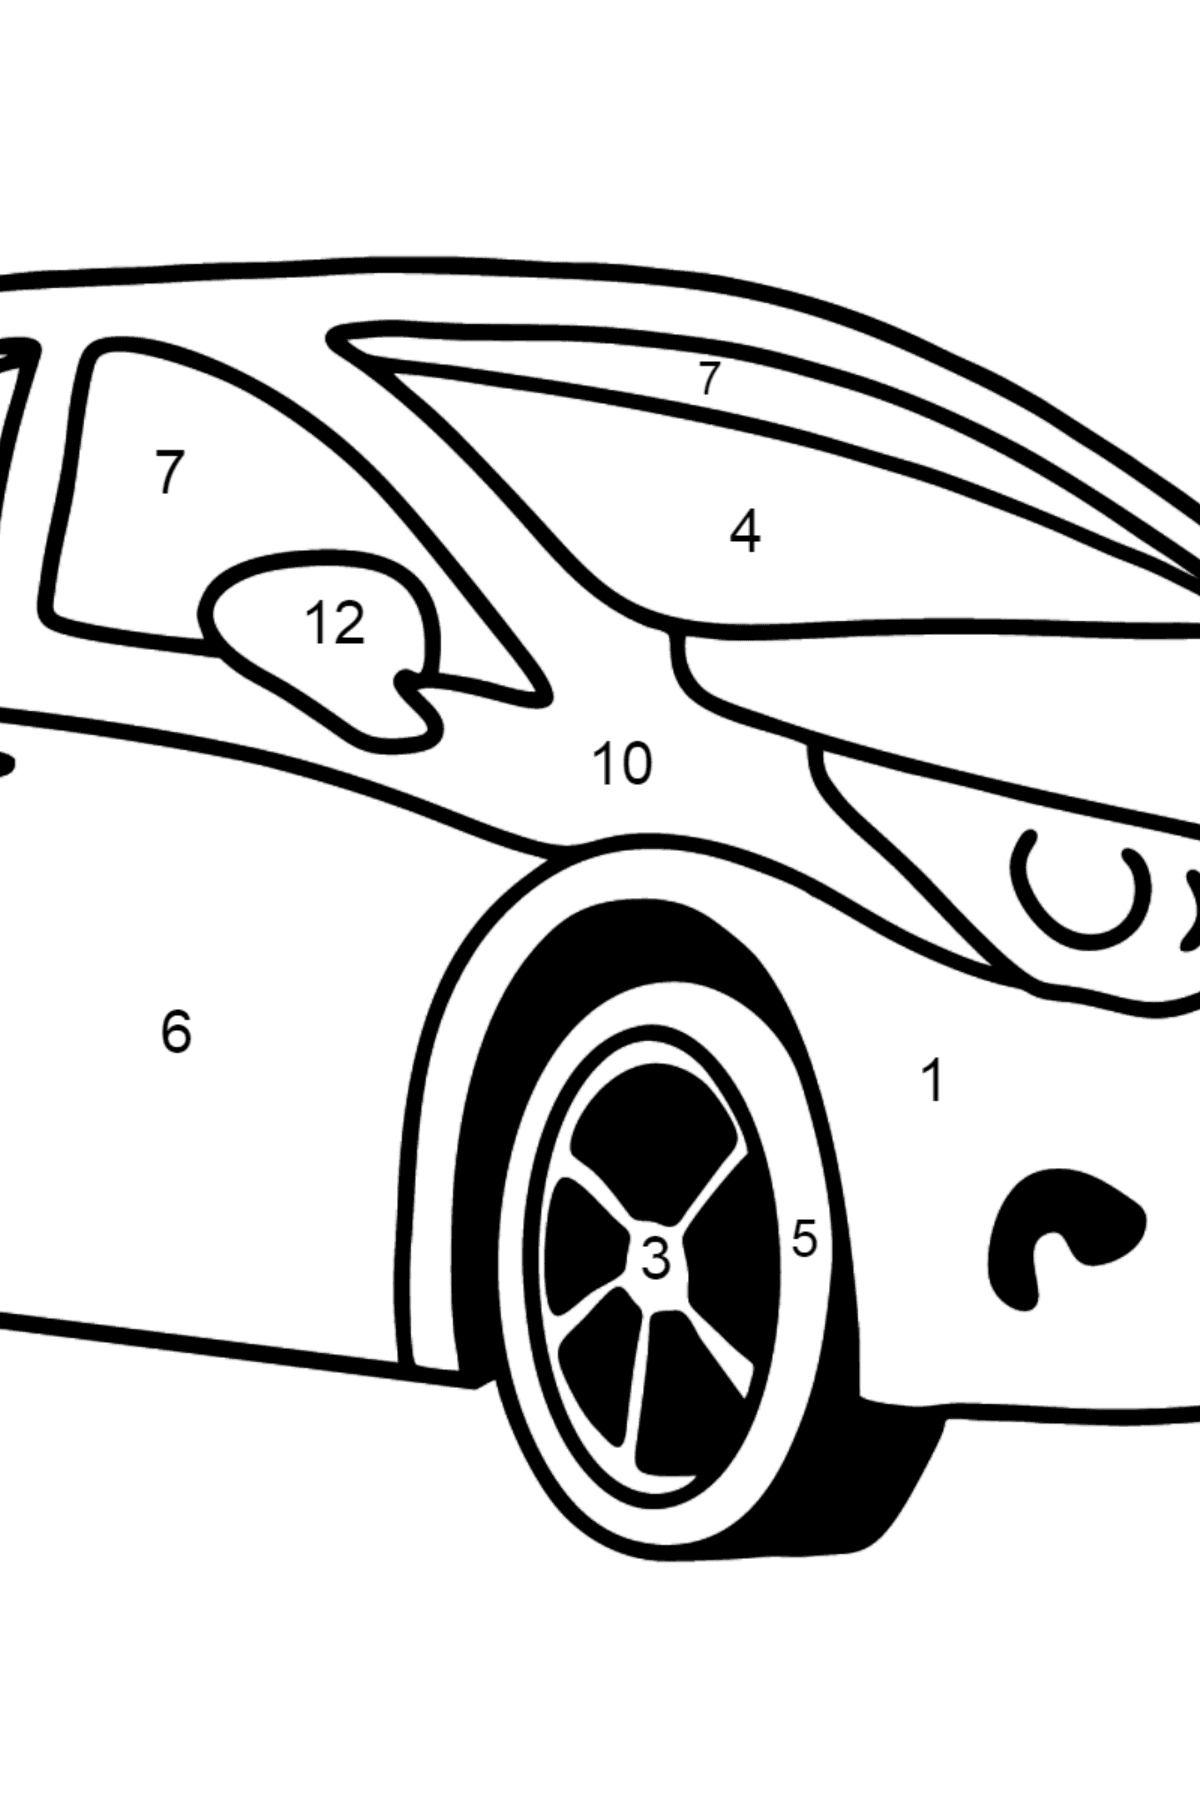 Toyota Avensis Car coloring page - Coloring by Numbers for Kids